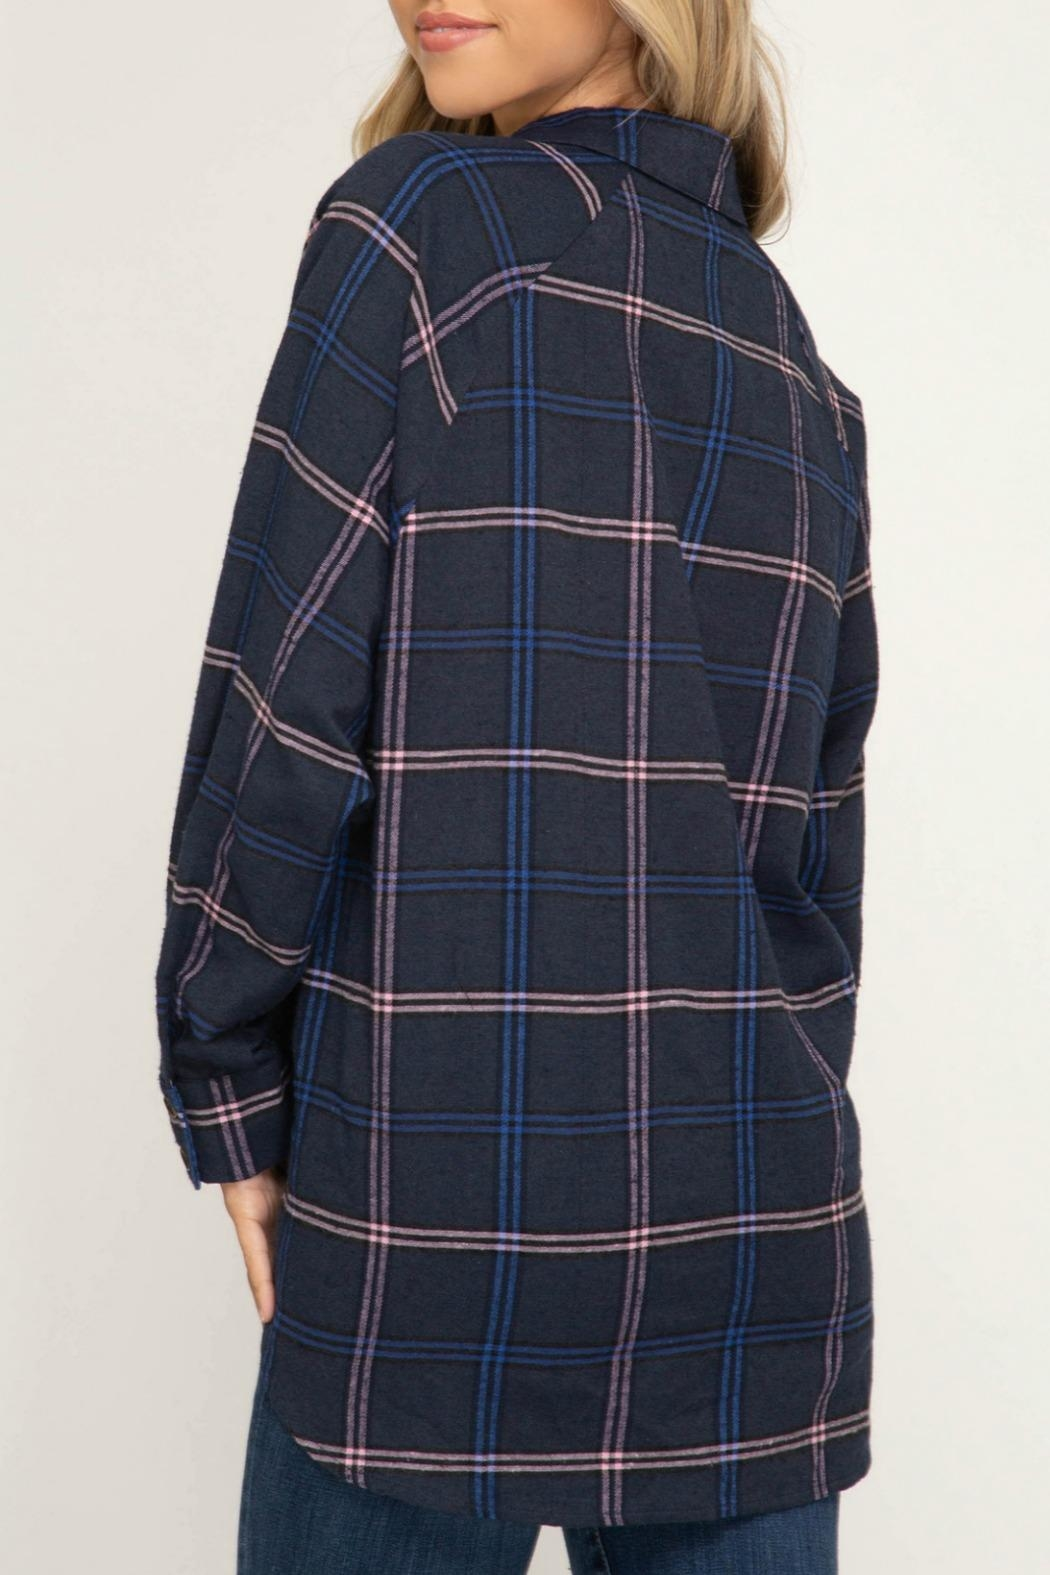 She + Sky Ally Plaid Top - Front Full Image